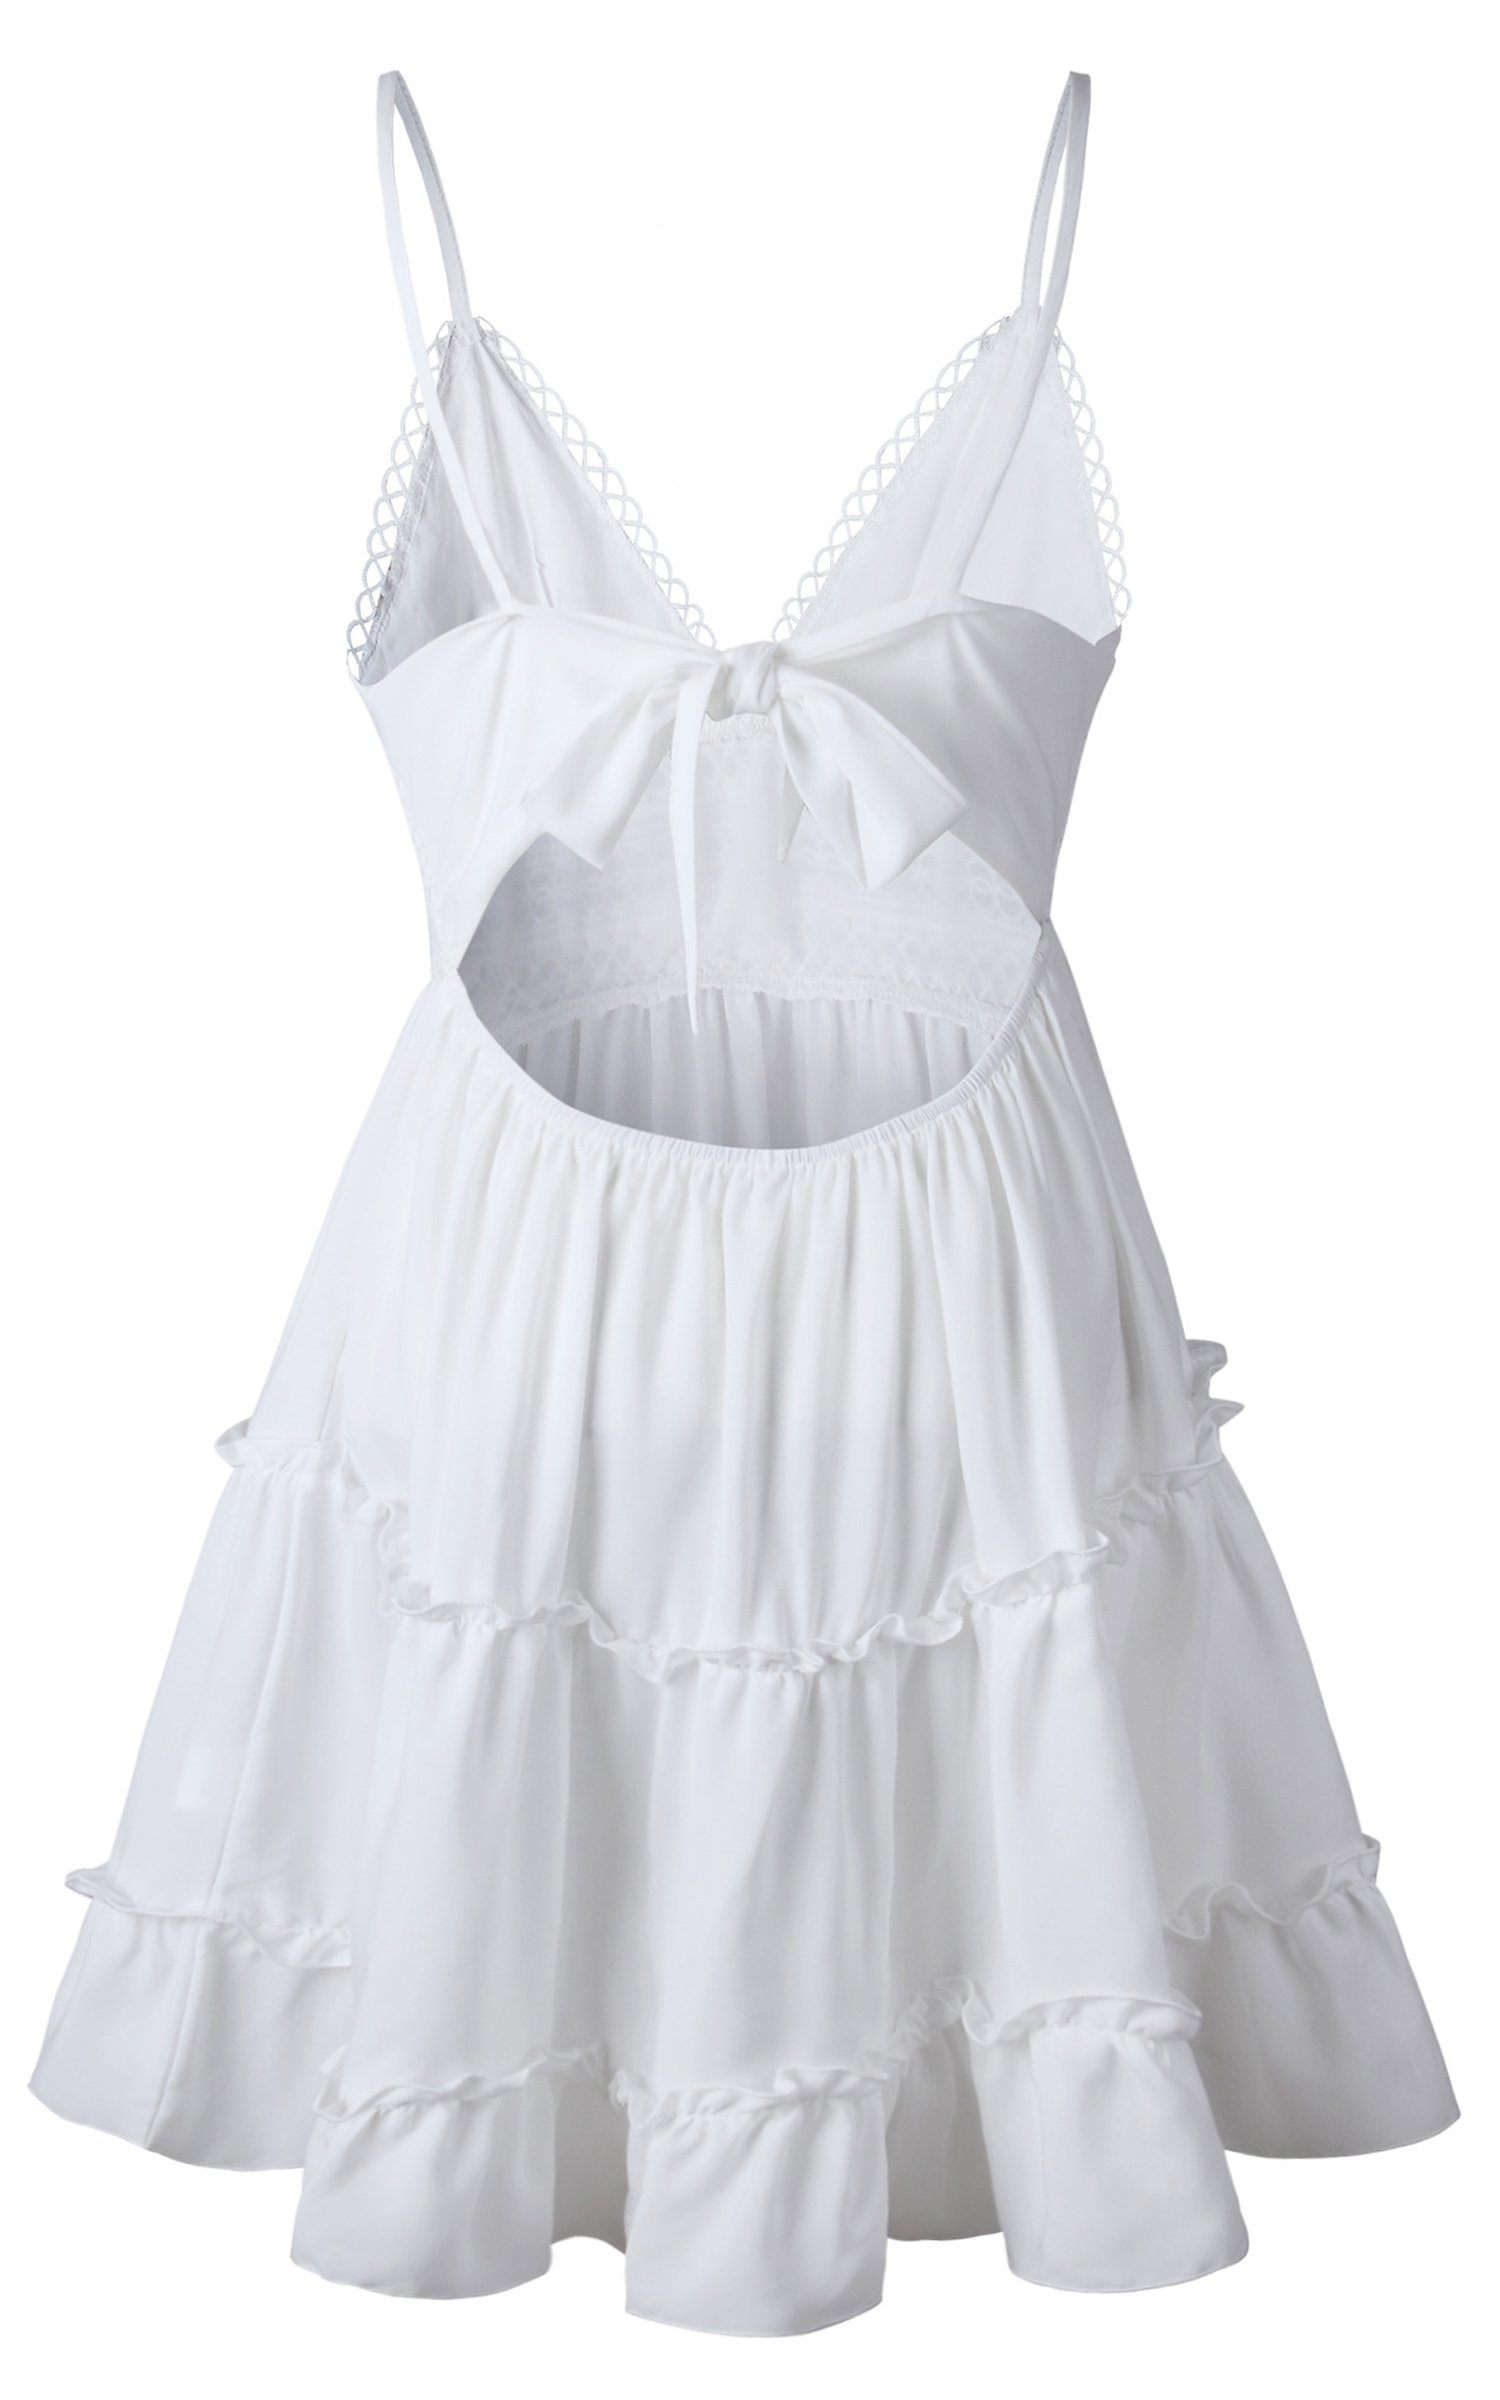 586f6b794b83 ECOWISH Womens V-Neck Spaghetti Strap Bowknot Backless Sleeveless Lace Mini  Swing Skater Dress White S - EH568 W S   Dresses   Clothing